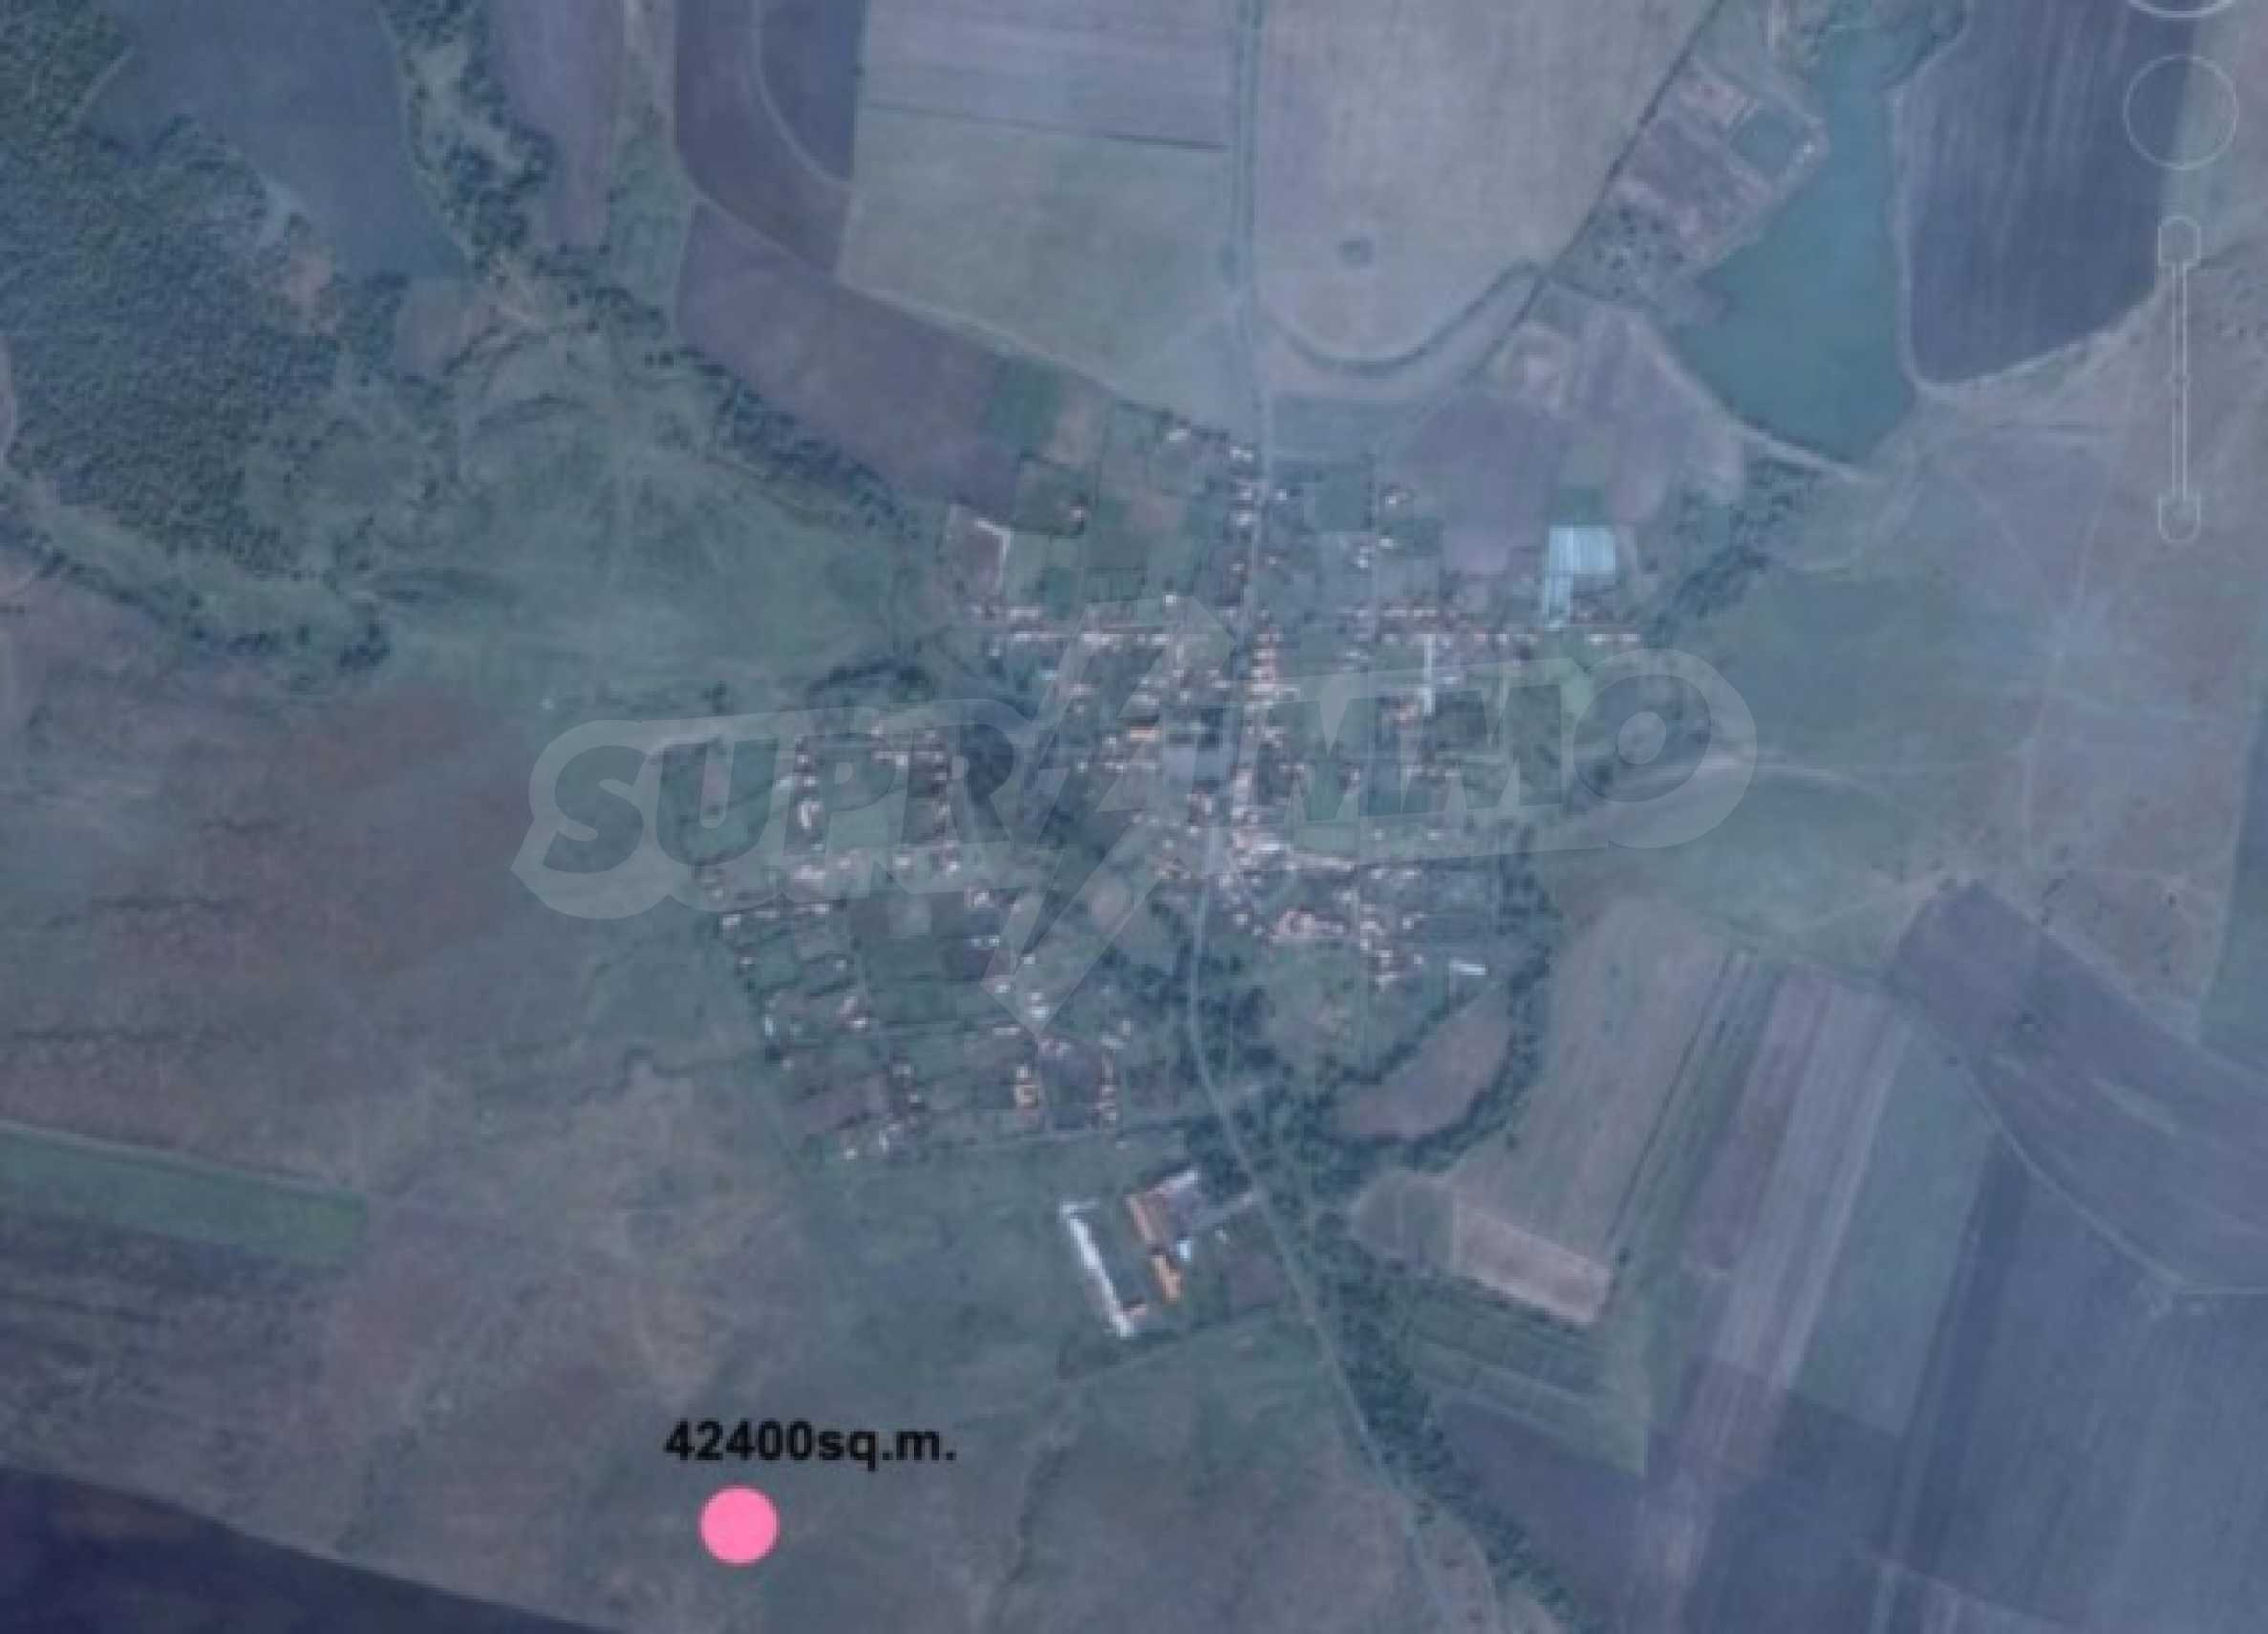 Huge plot of agricultural land near the motorway. 6